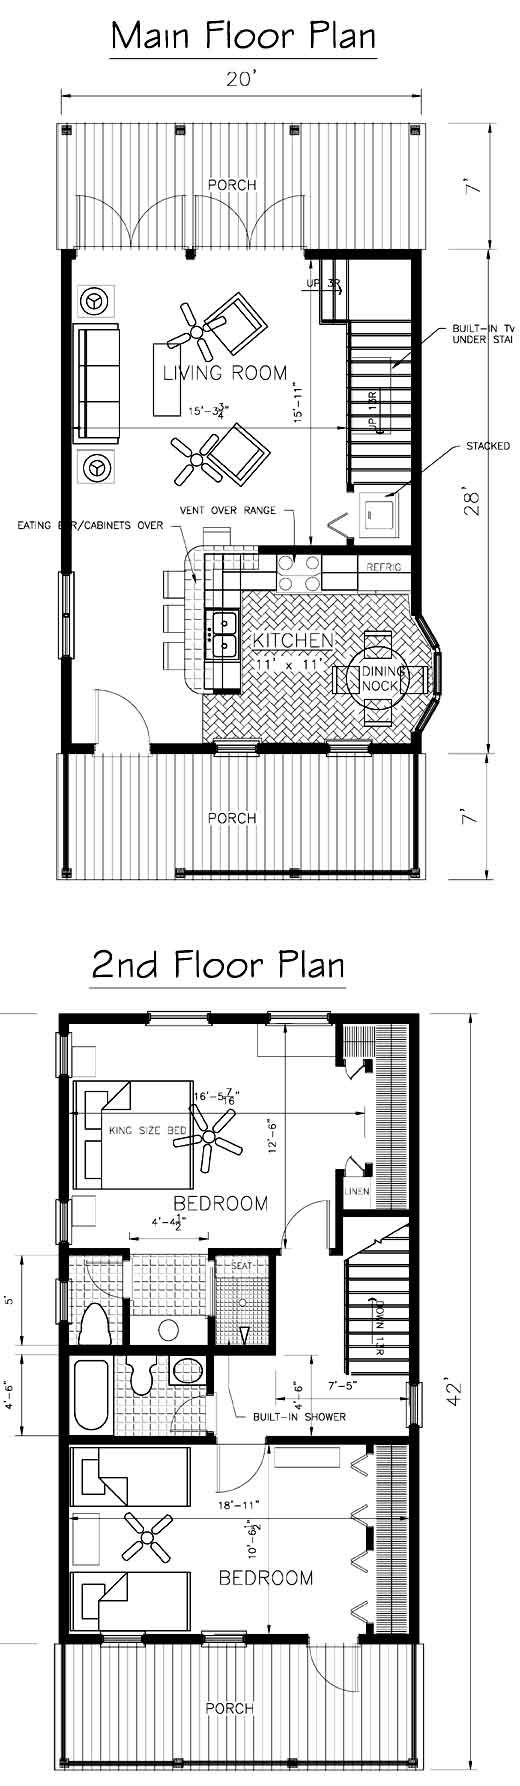 station house 1078 sq ft small house based on a train station station house 1078 sq ft small house based on a train station charming functional floorplan jeff sheldon architect guest cottage pinterest